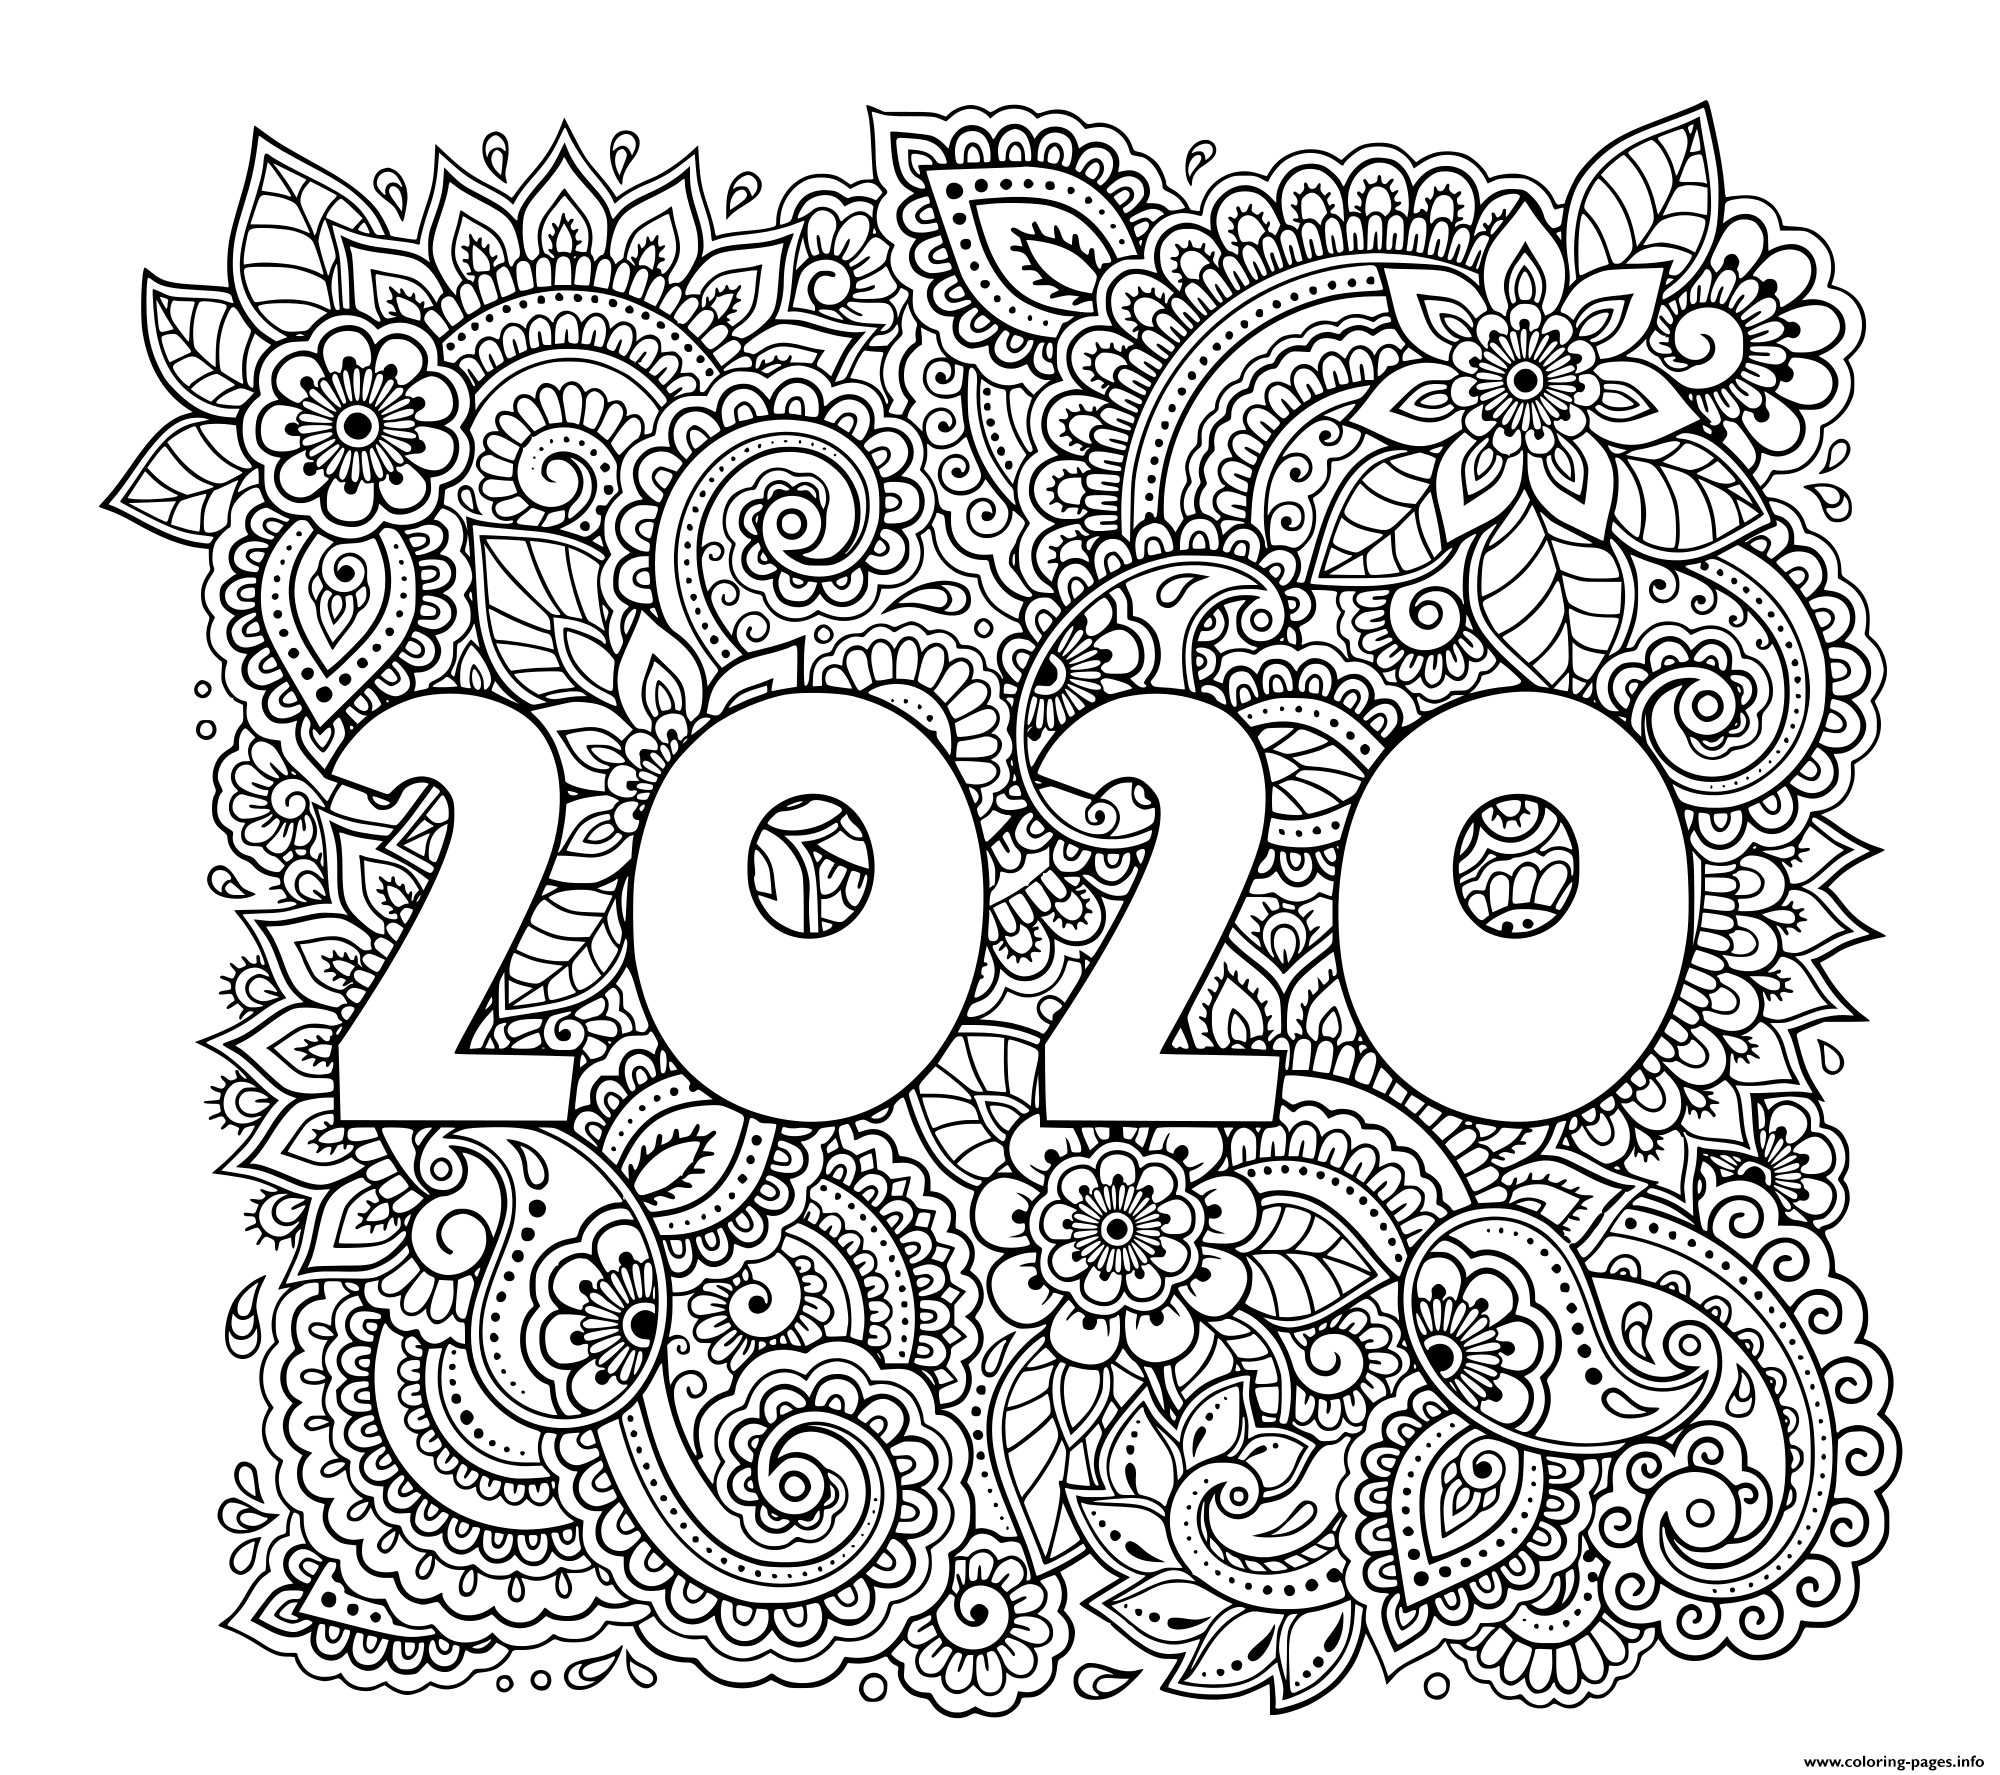 chinese new year coloring pages 2020 happy new year 2020 with mouse coloring pages get coloring year 2020 pages new chinese